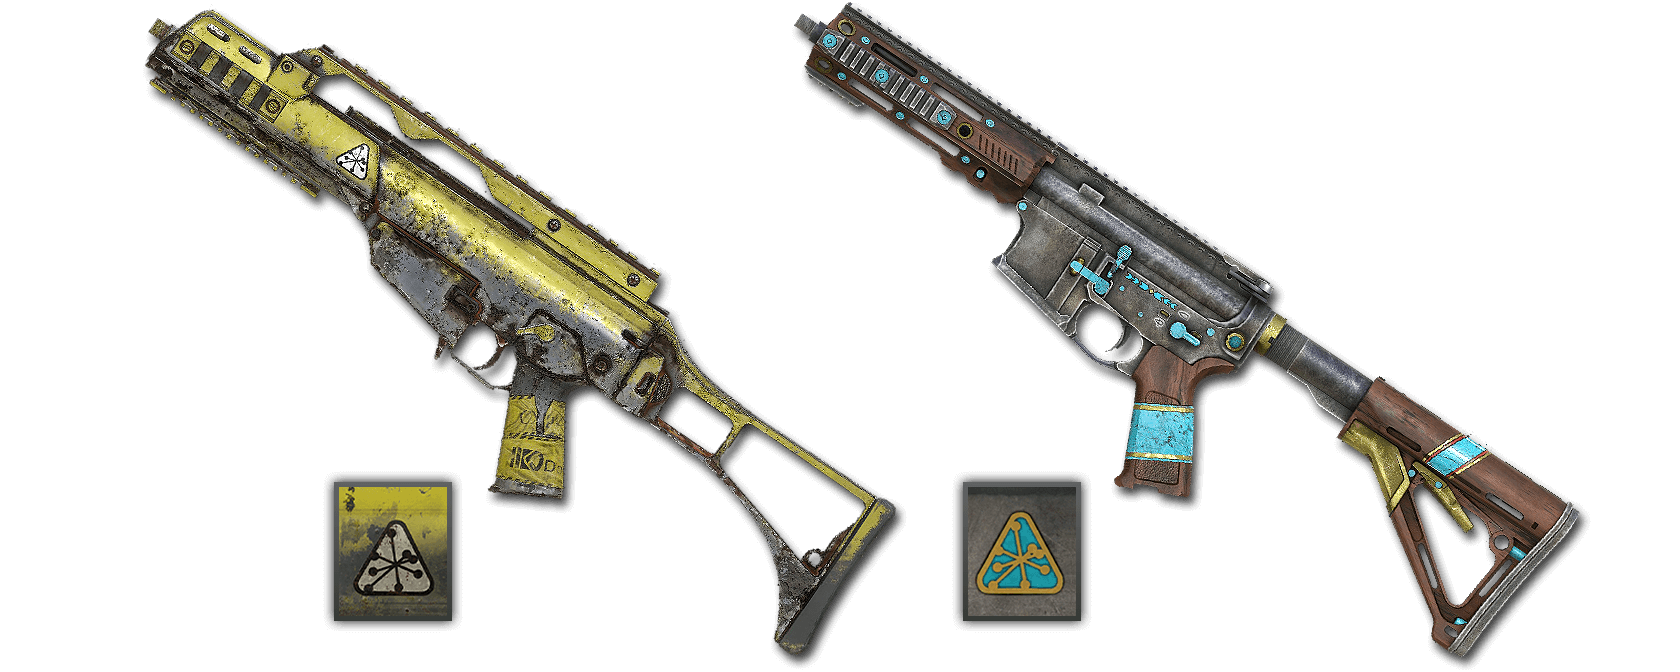 IMAGE(https://ubistatic19-a.akamaihd.net/resource/en-us/game/rainbow6/siege-v3/R6_chimera_patches-weapons-skins.png)